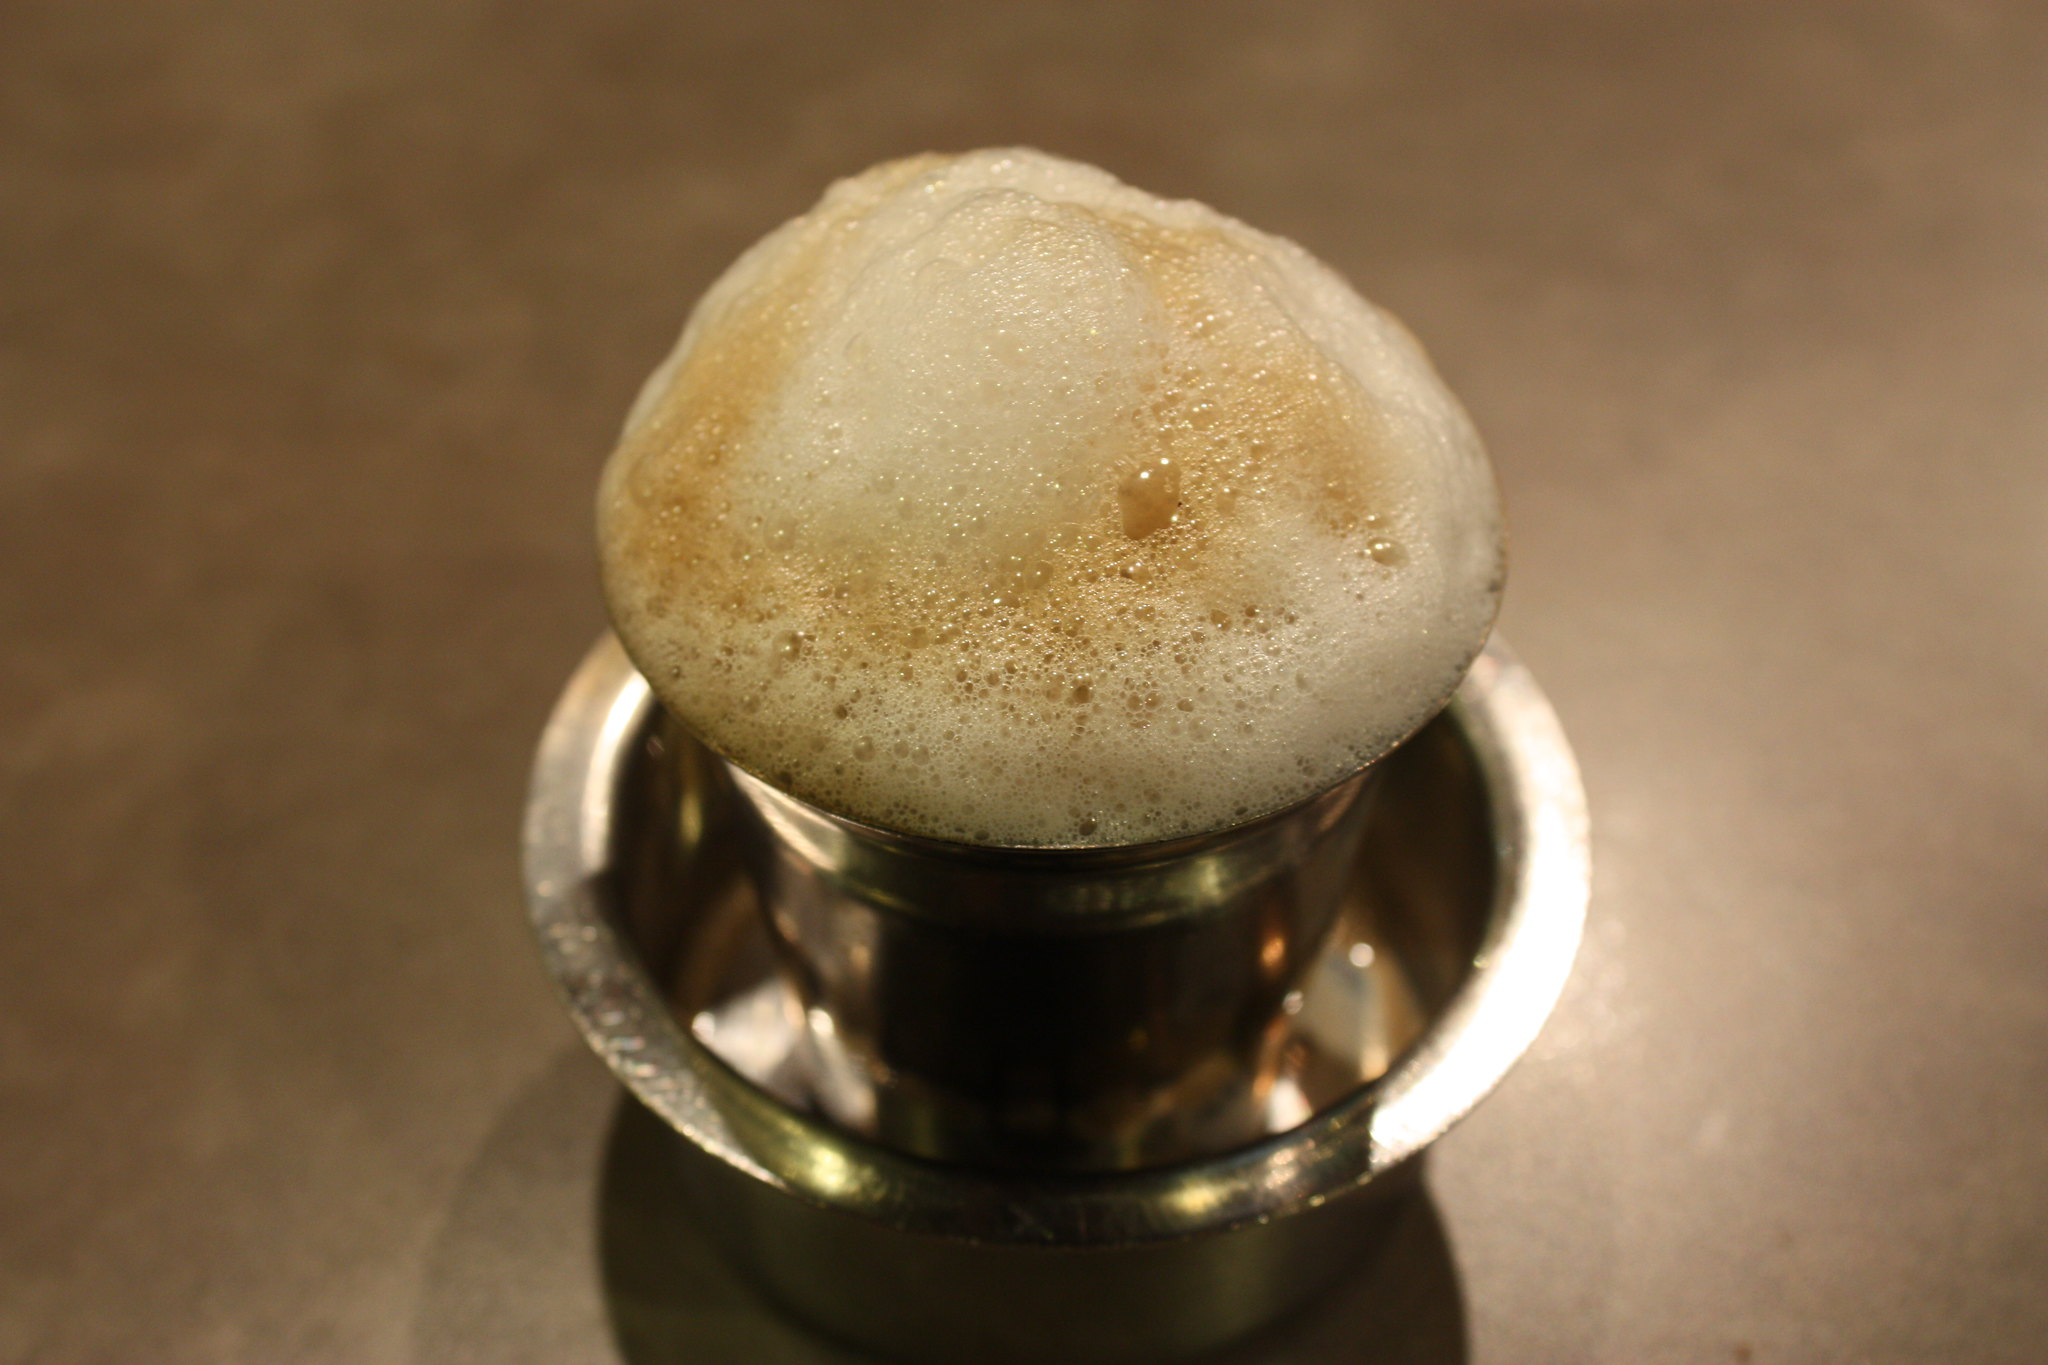 a cup of Southern India filter coffee topped with milk foam